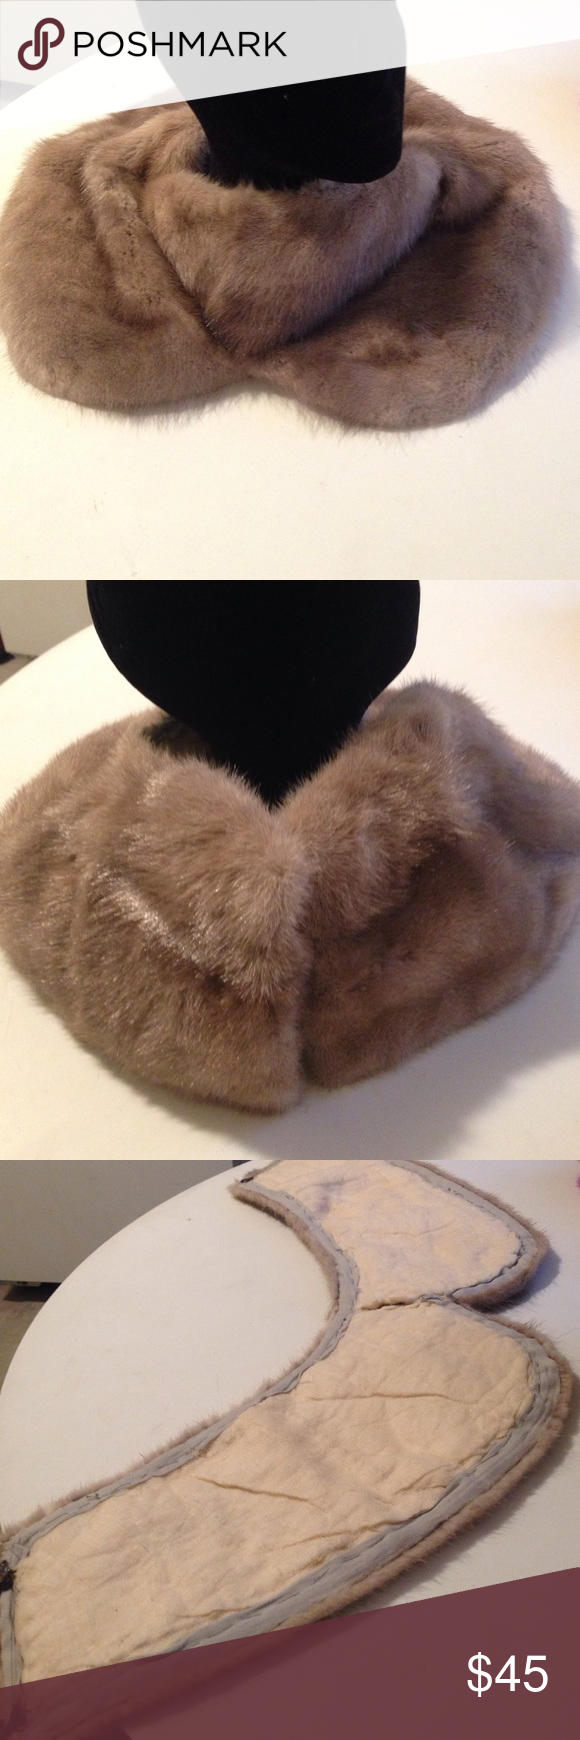 Authentic mink collar Can be worn on a sweater or coat. Looks stunning with turtle neck sweaters. Eye & clamp closure. Nice & soft. Taupe grayish color Accessories Scarves & Wraps